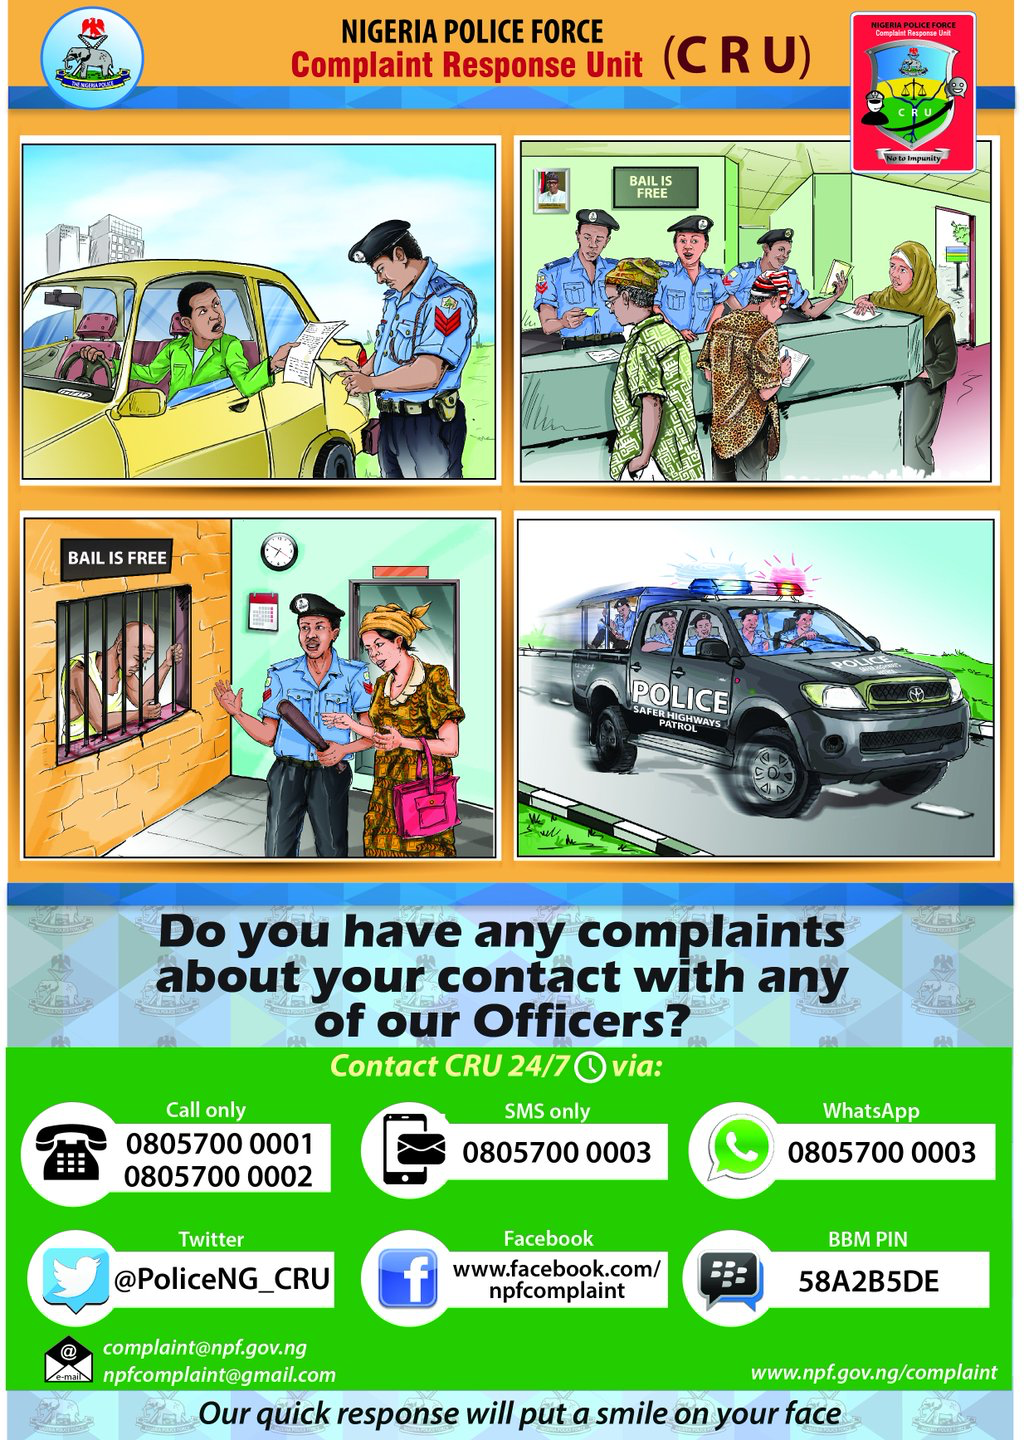 How to complain about a policeman in Nigeria